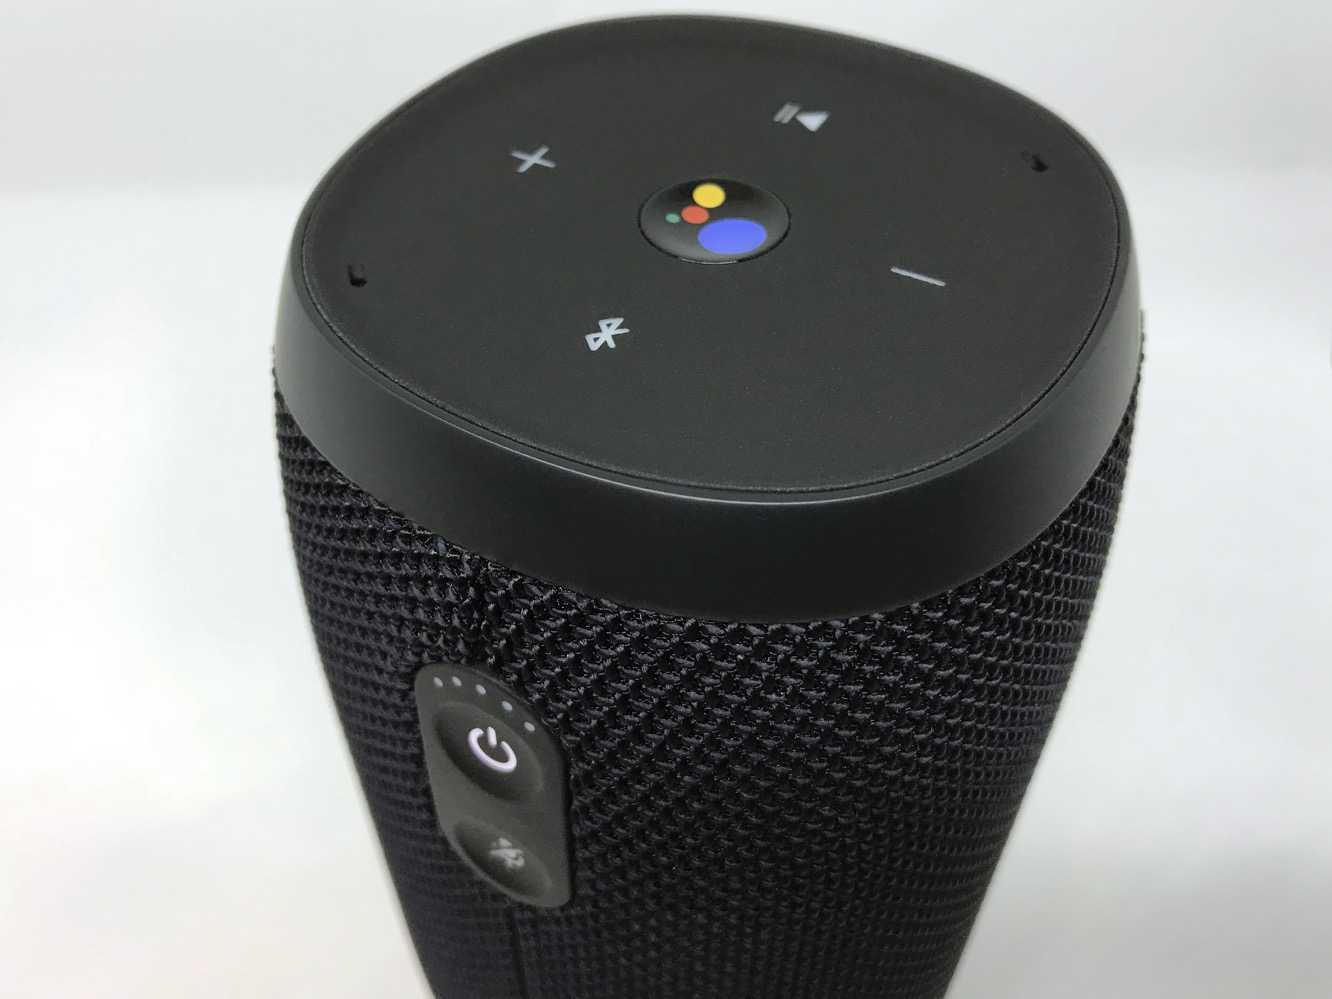 Use Google Assistant to broadcast messages across all your Home speakers